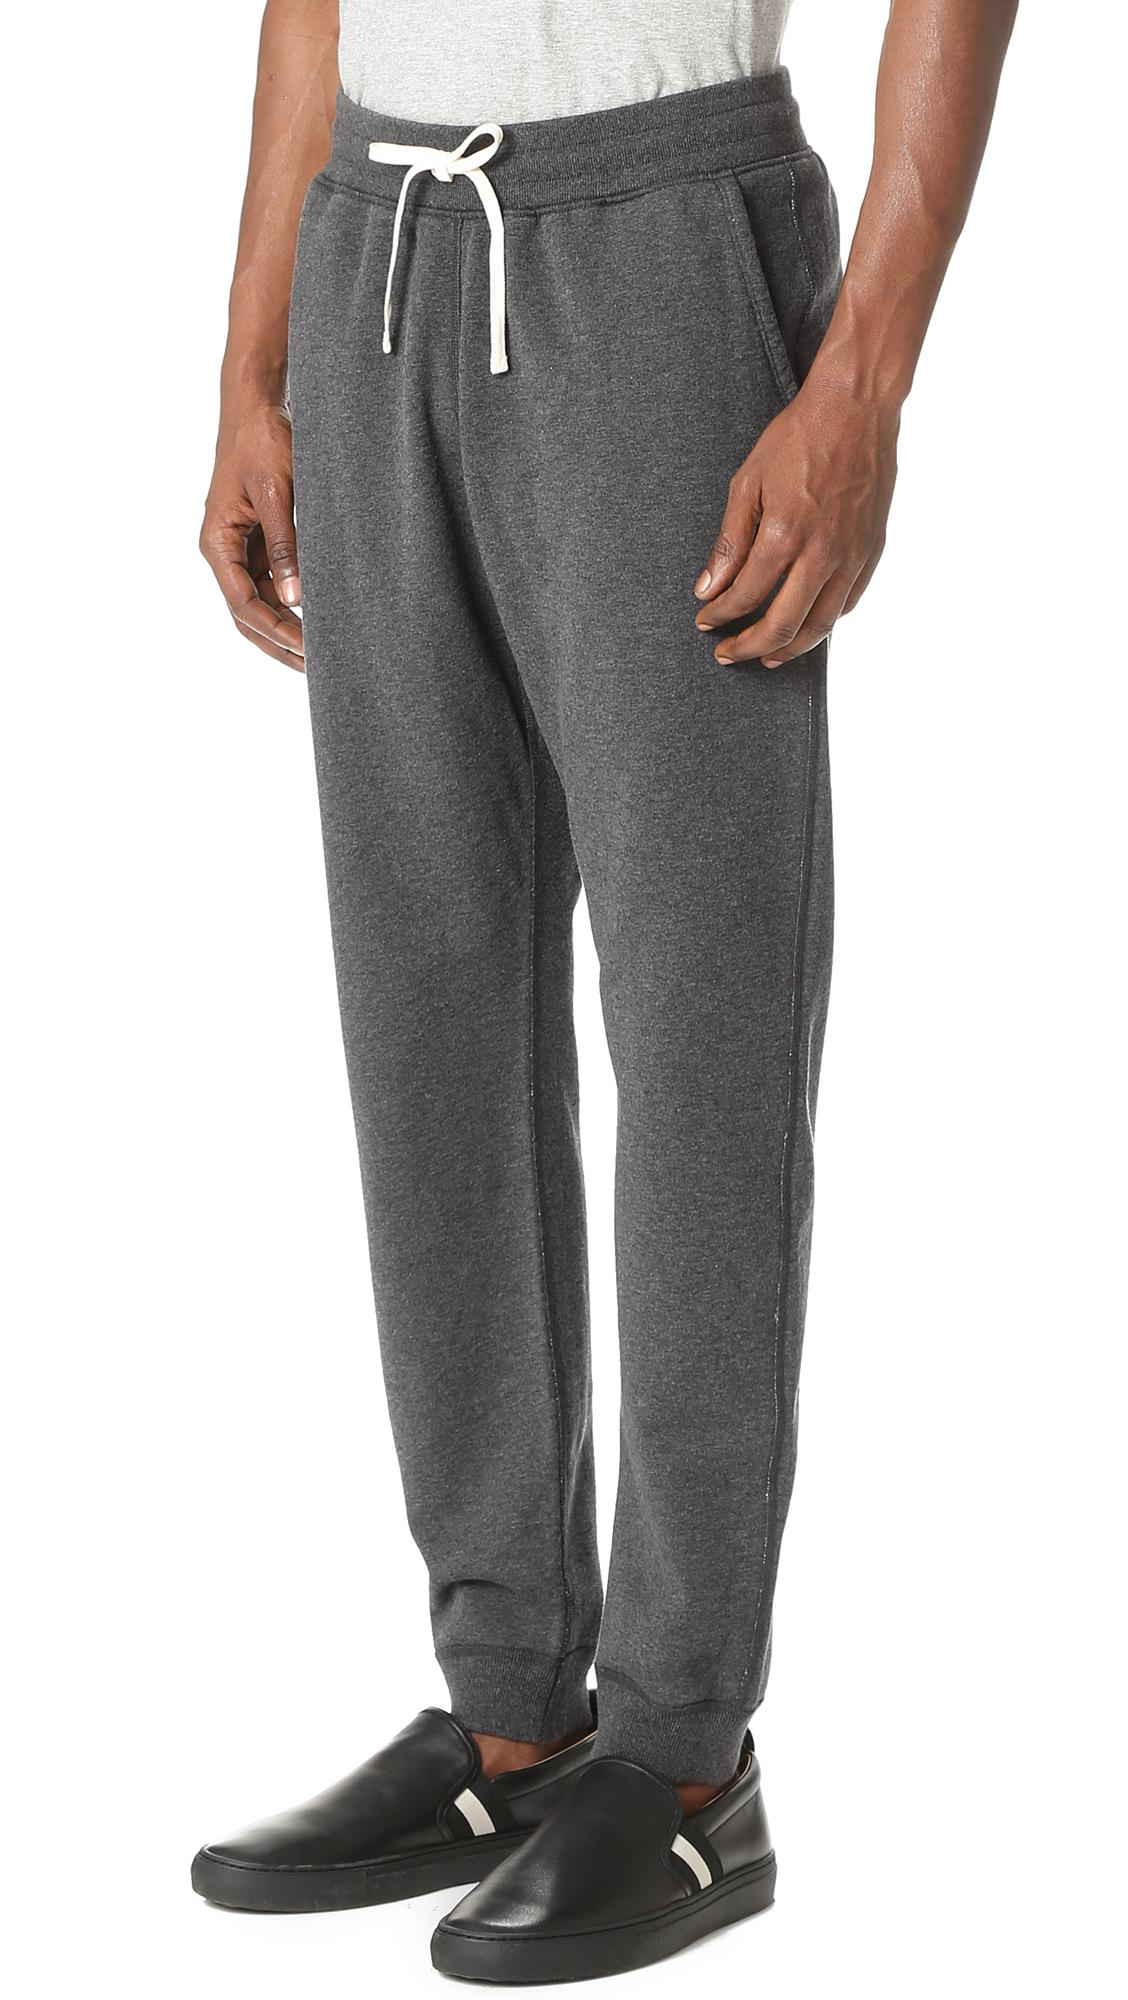 c949a3dd89c5 Lyst - Reigning Champ Mid Weight Terry Slim Sweatpants in Gray for Men